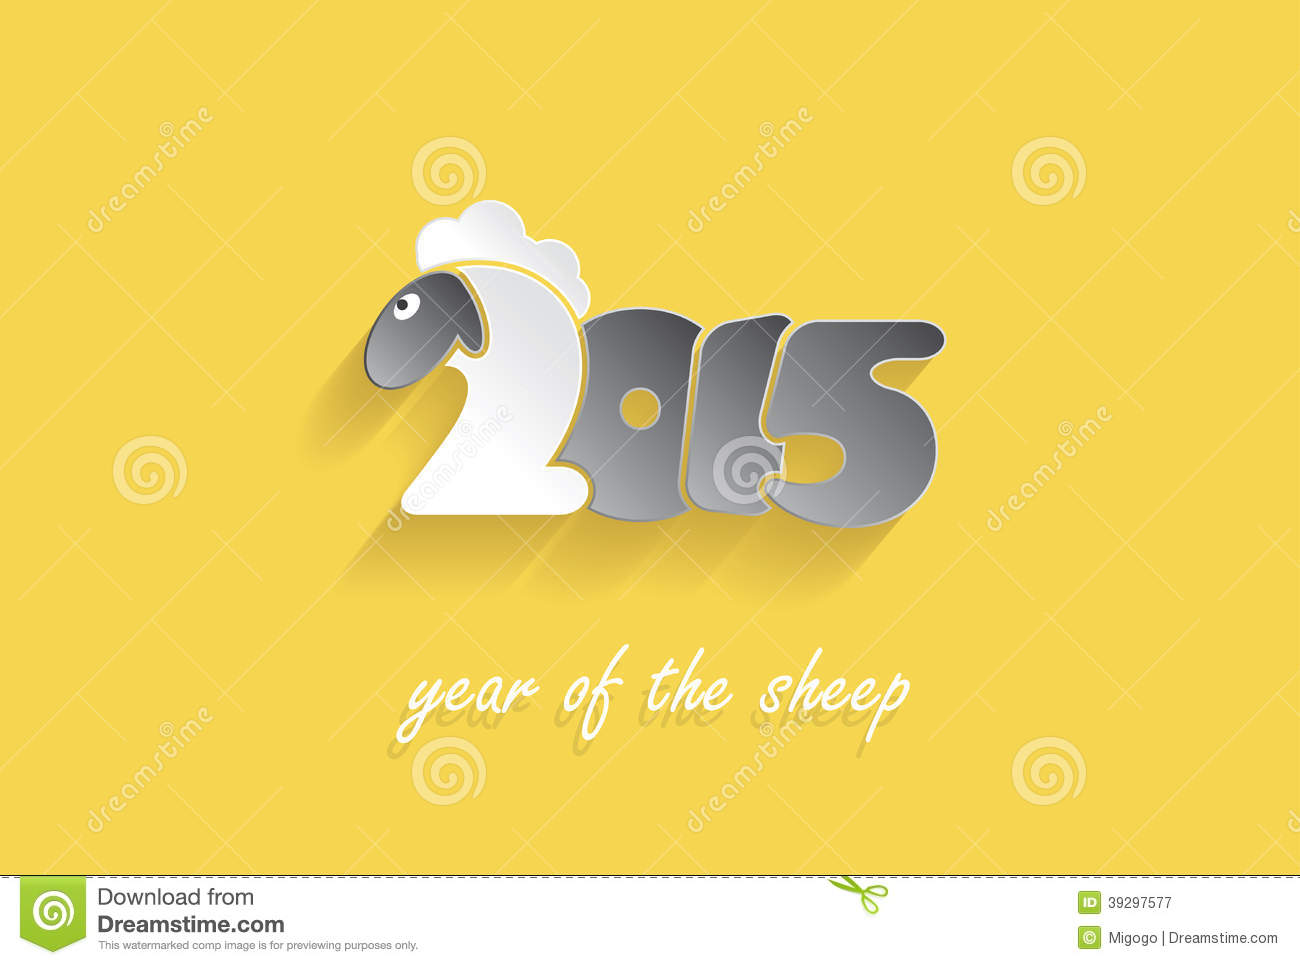 Happy new year 2015 creative greeting card stock illustration happy new year 2015 creative greeting card lamb light kristyandbryce Choice Image